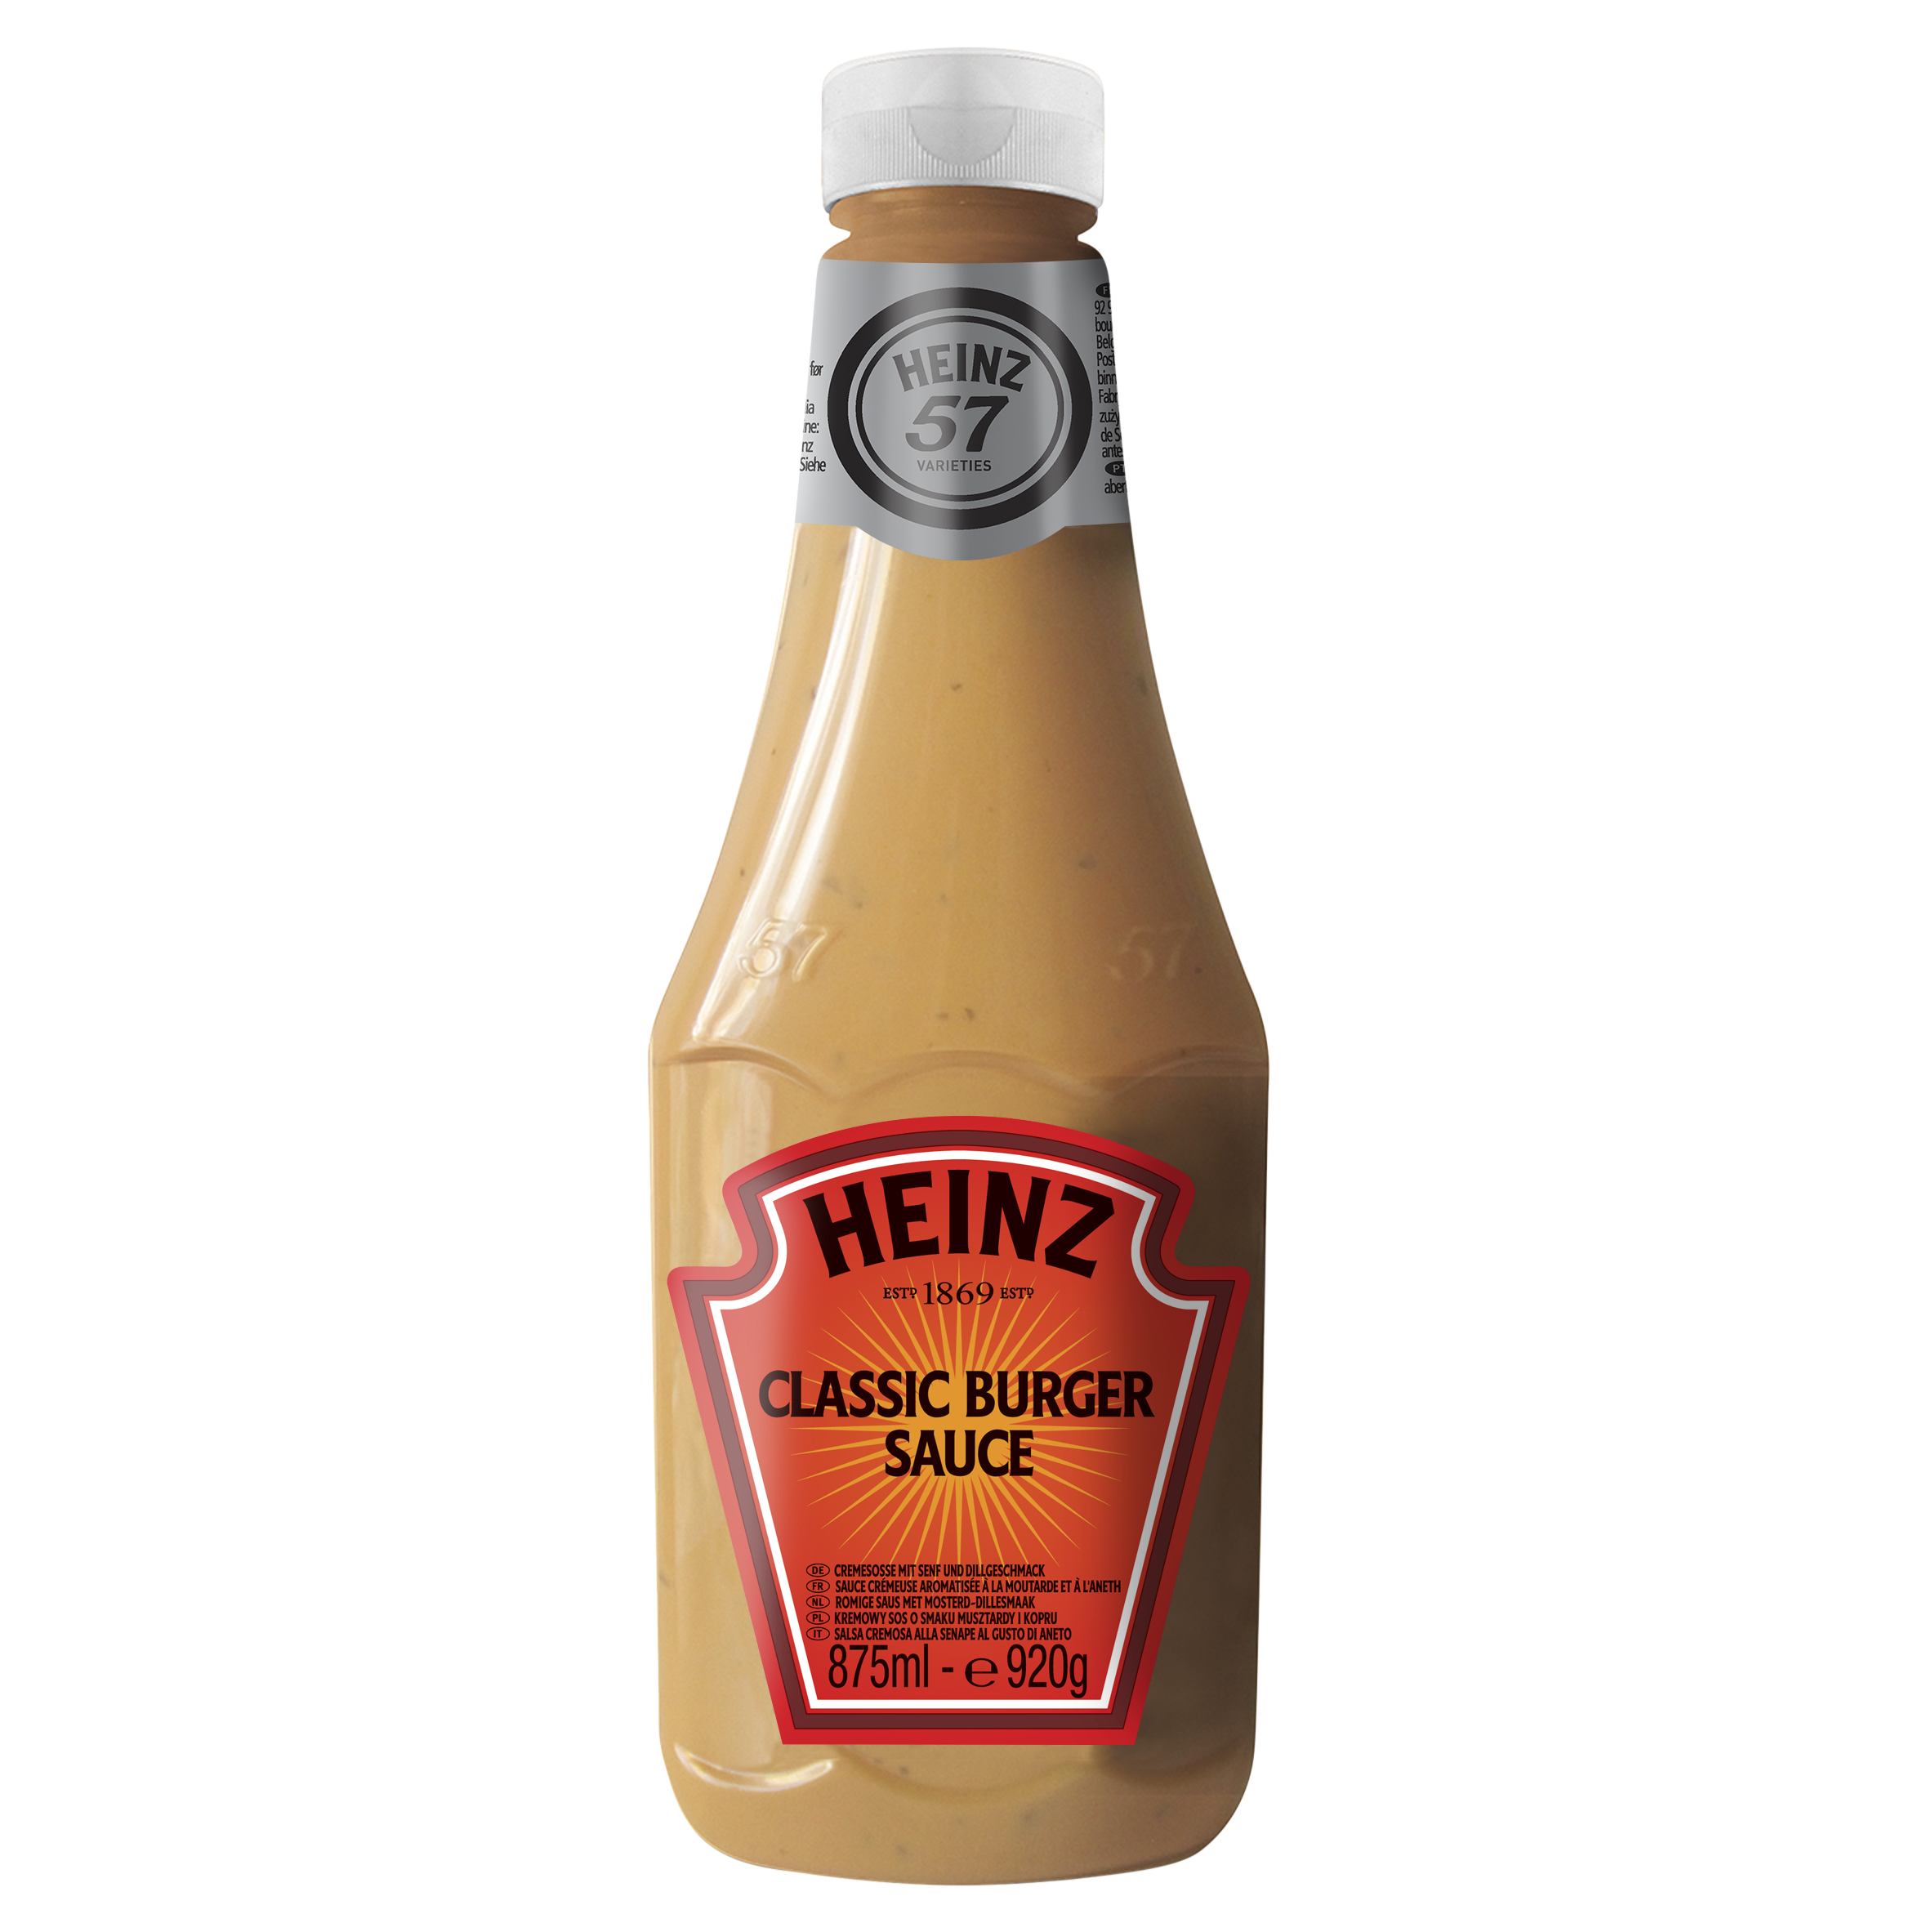 Heinz Burger Sauce 875ml Up Right image